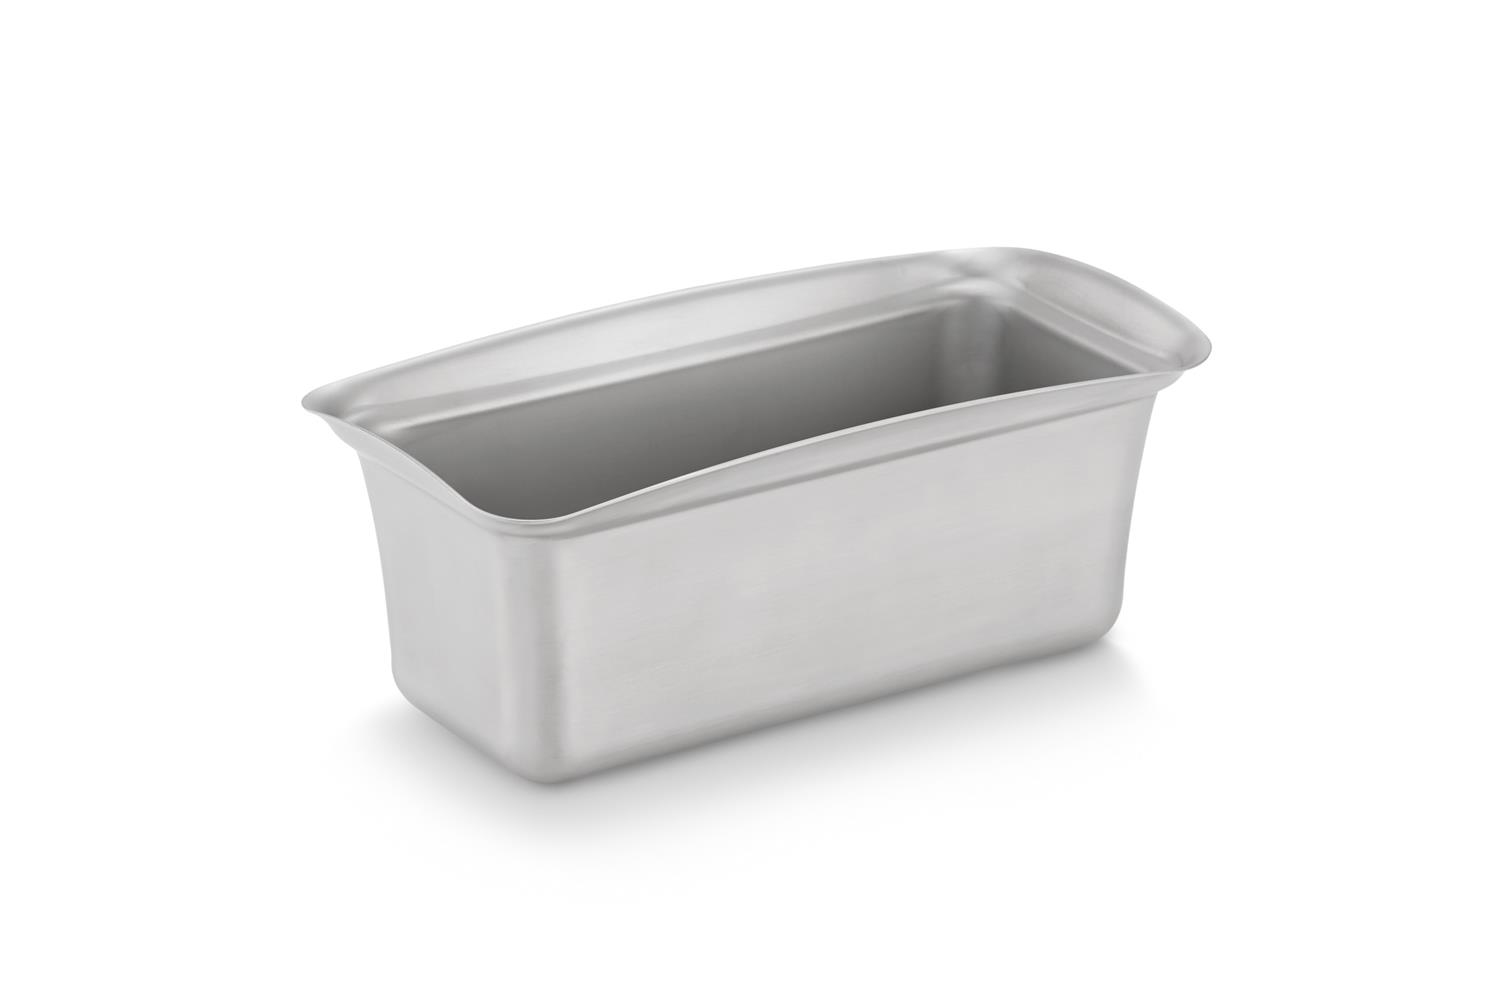 Vollrath 40004 Miramar Contemporary Pan, 2.5 qt